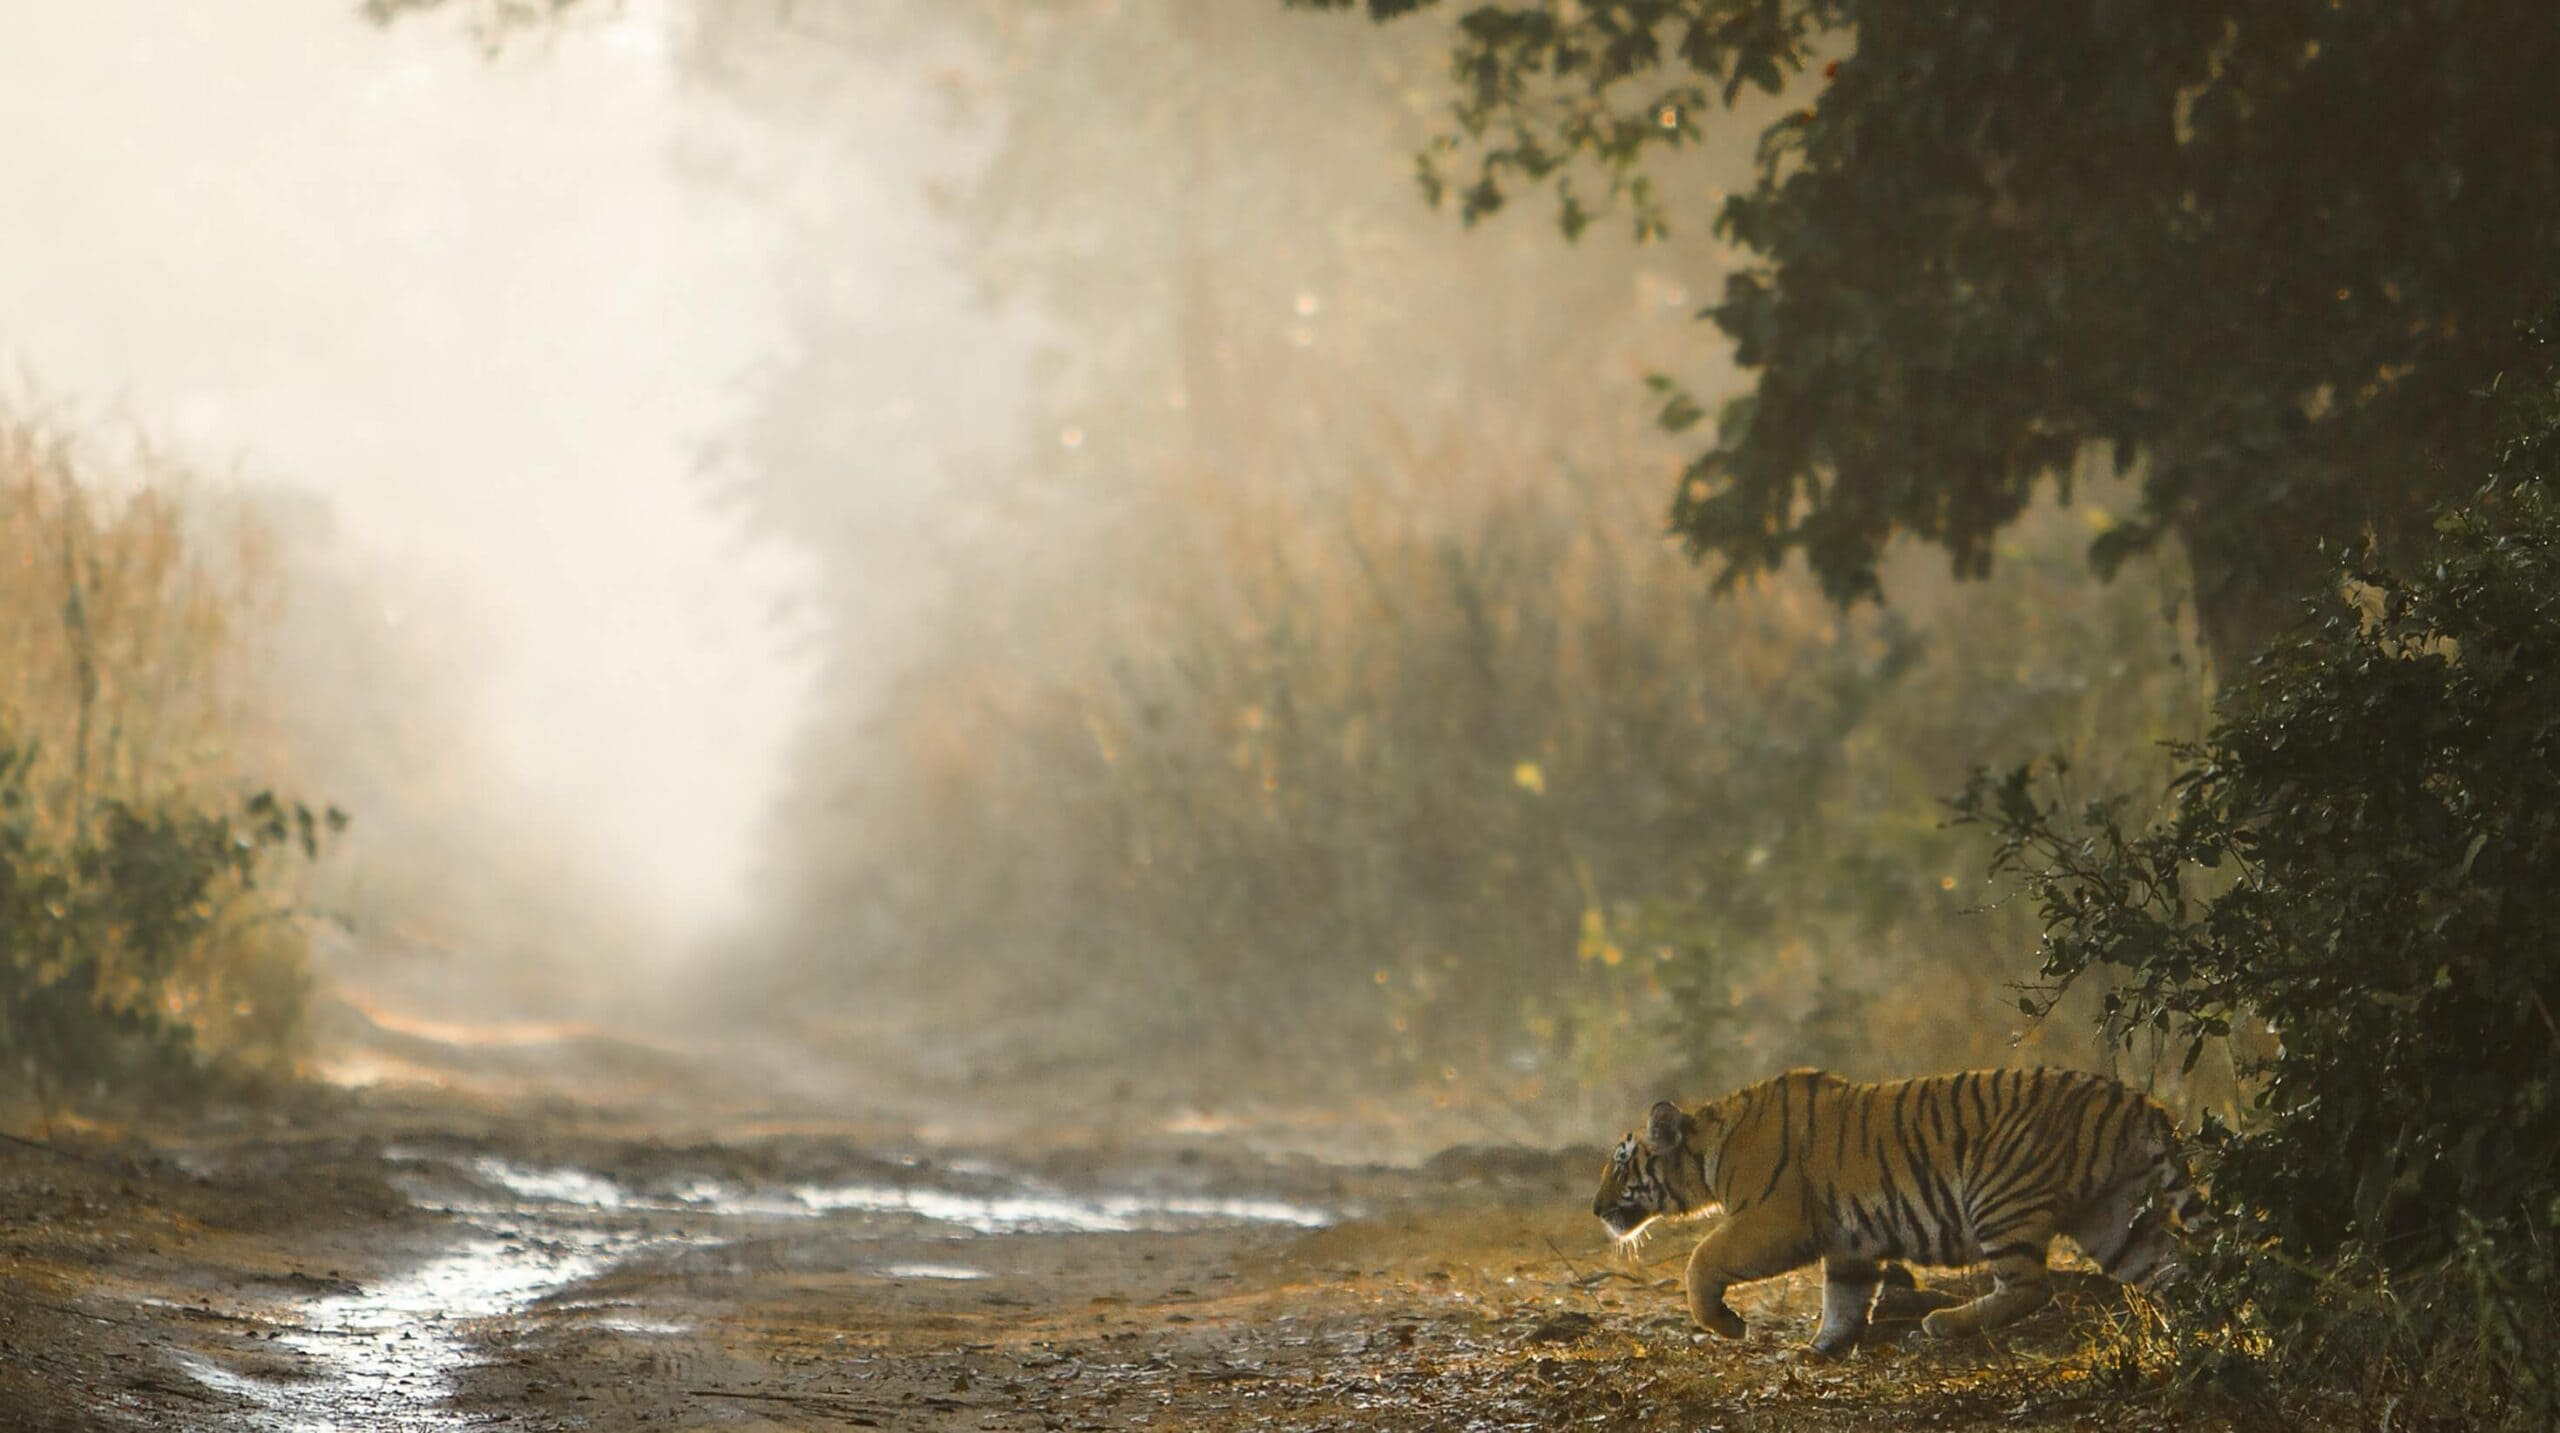 Tiger in India national park